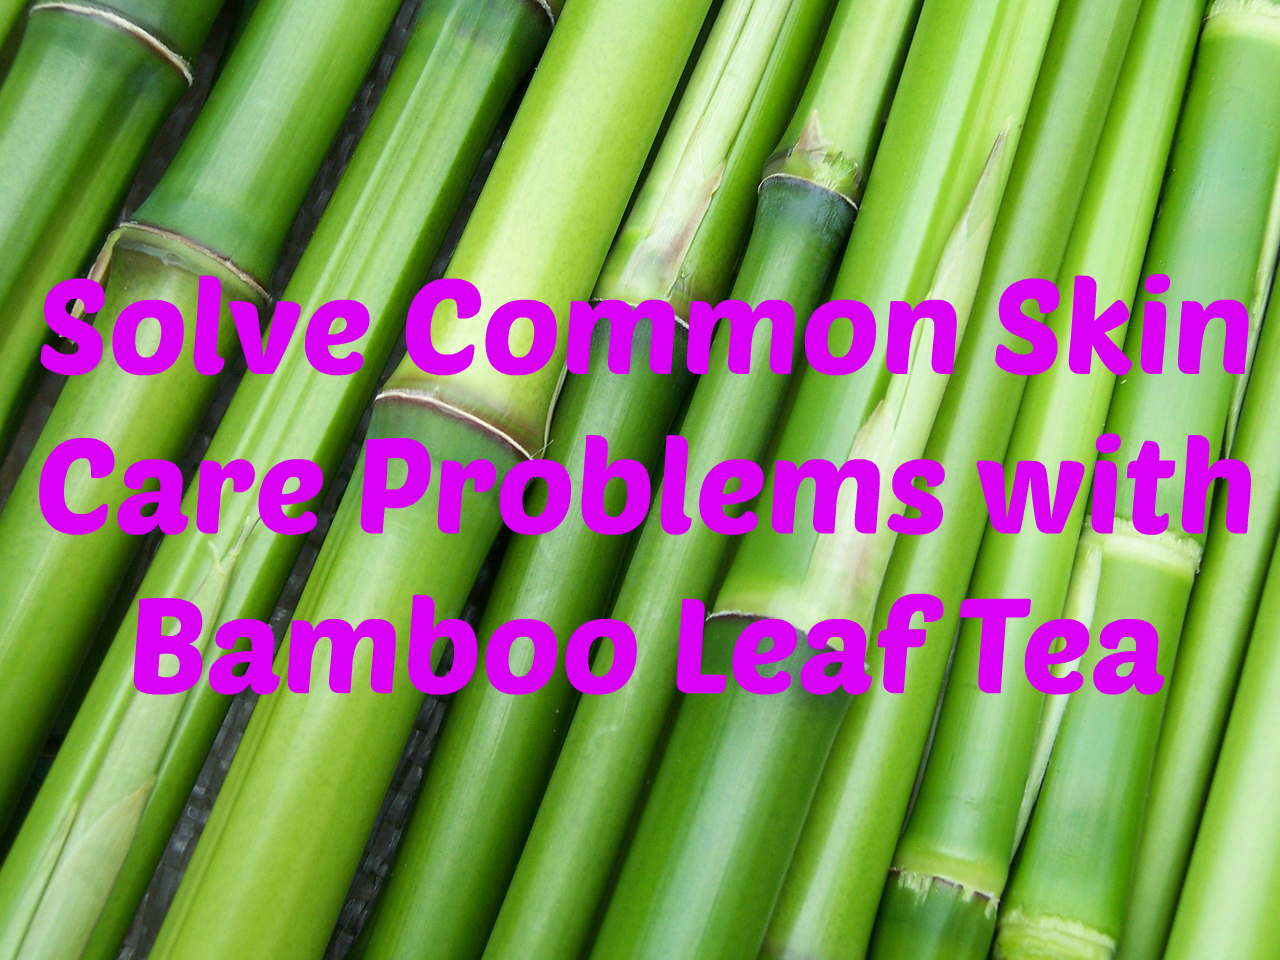 skin-care-problems-in-dubai-bamboo-leaf-tea